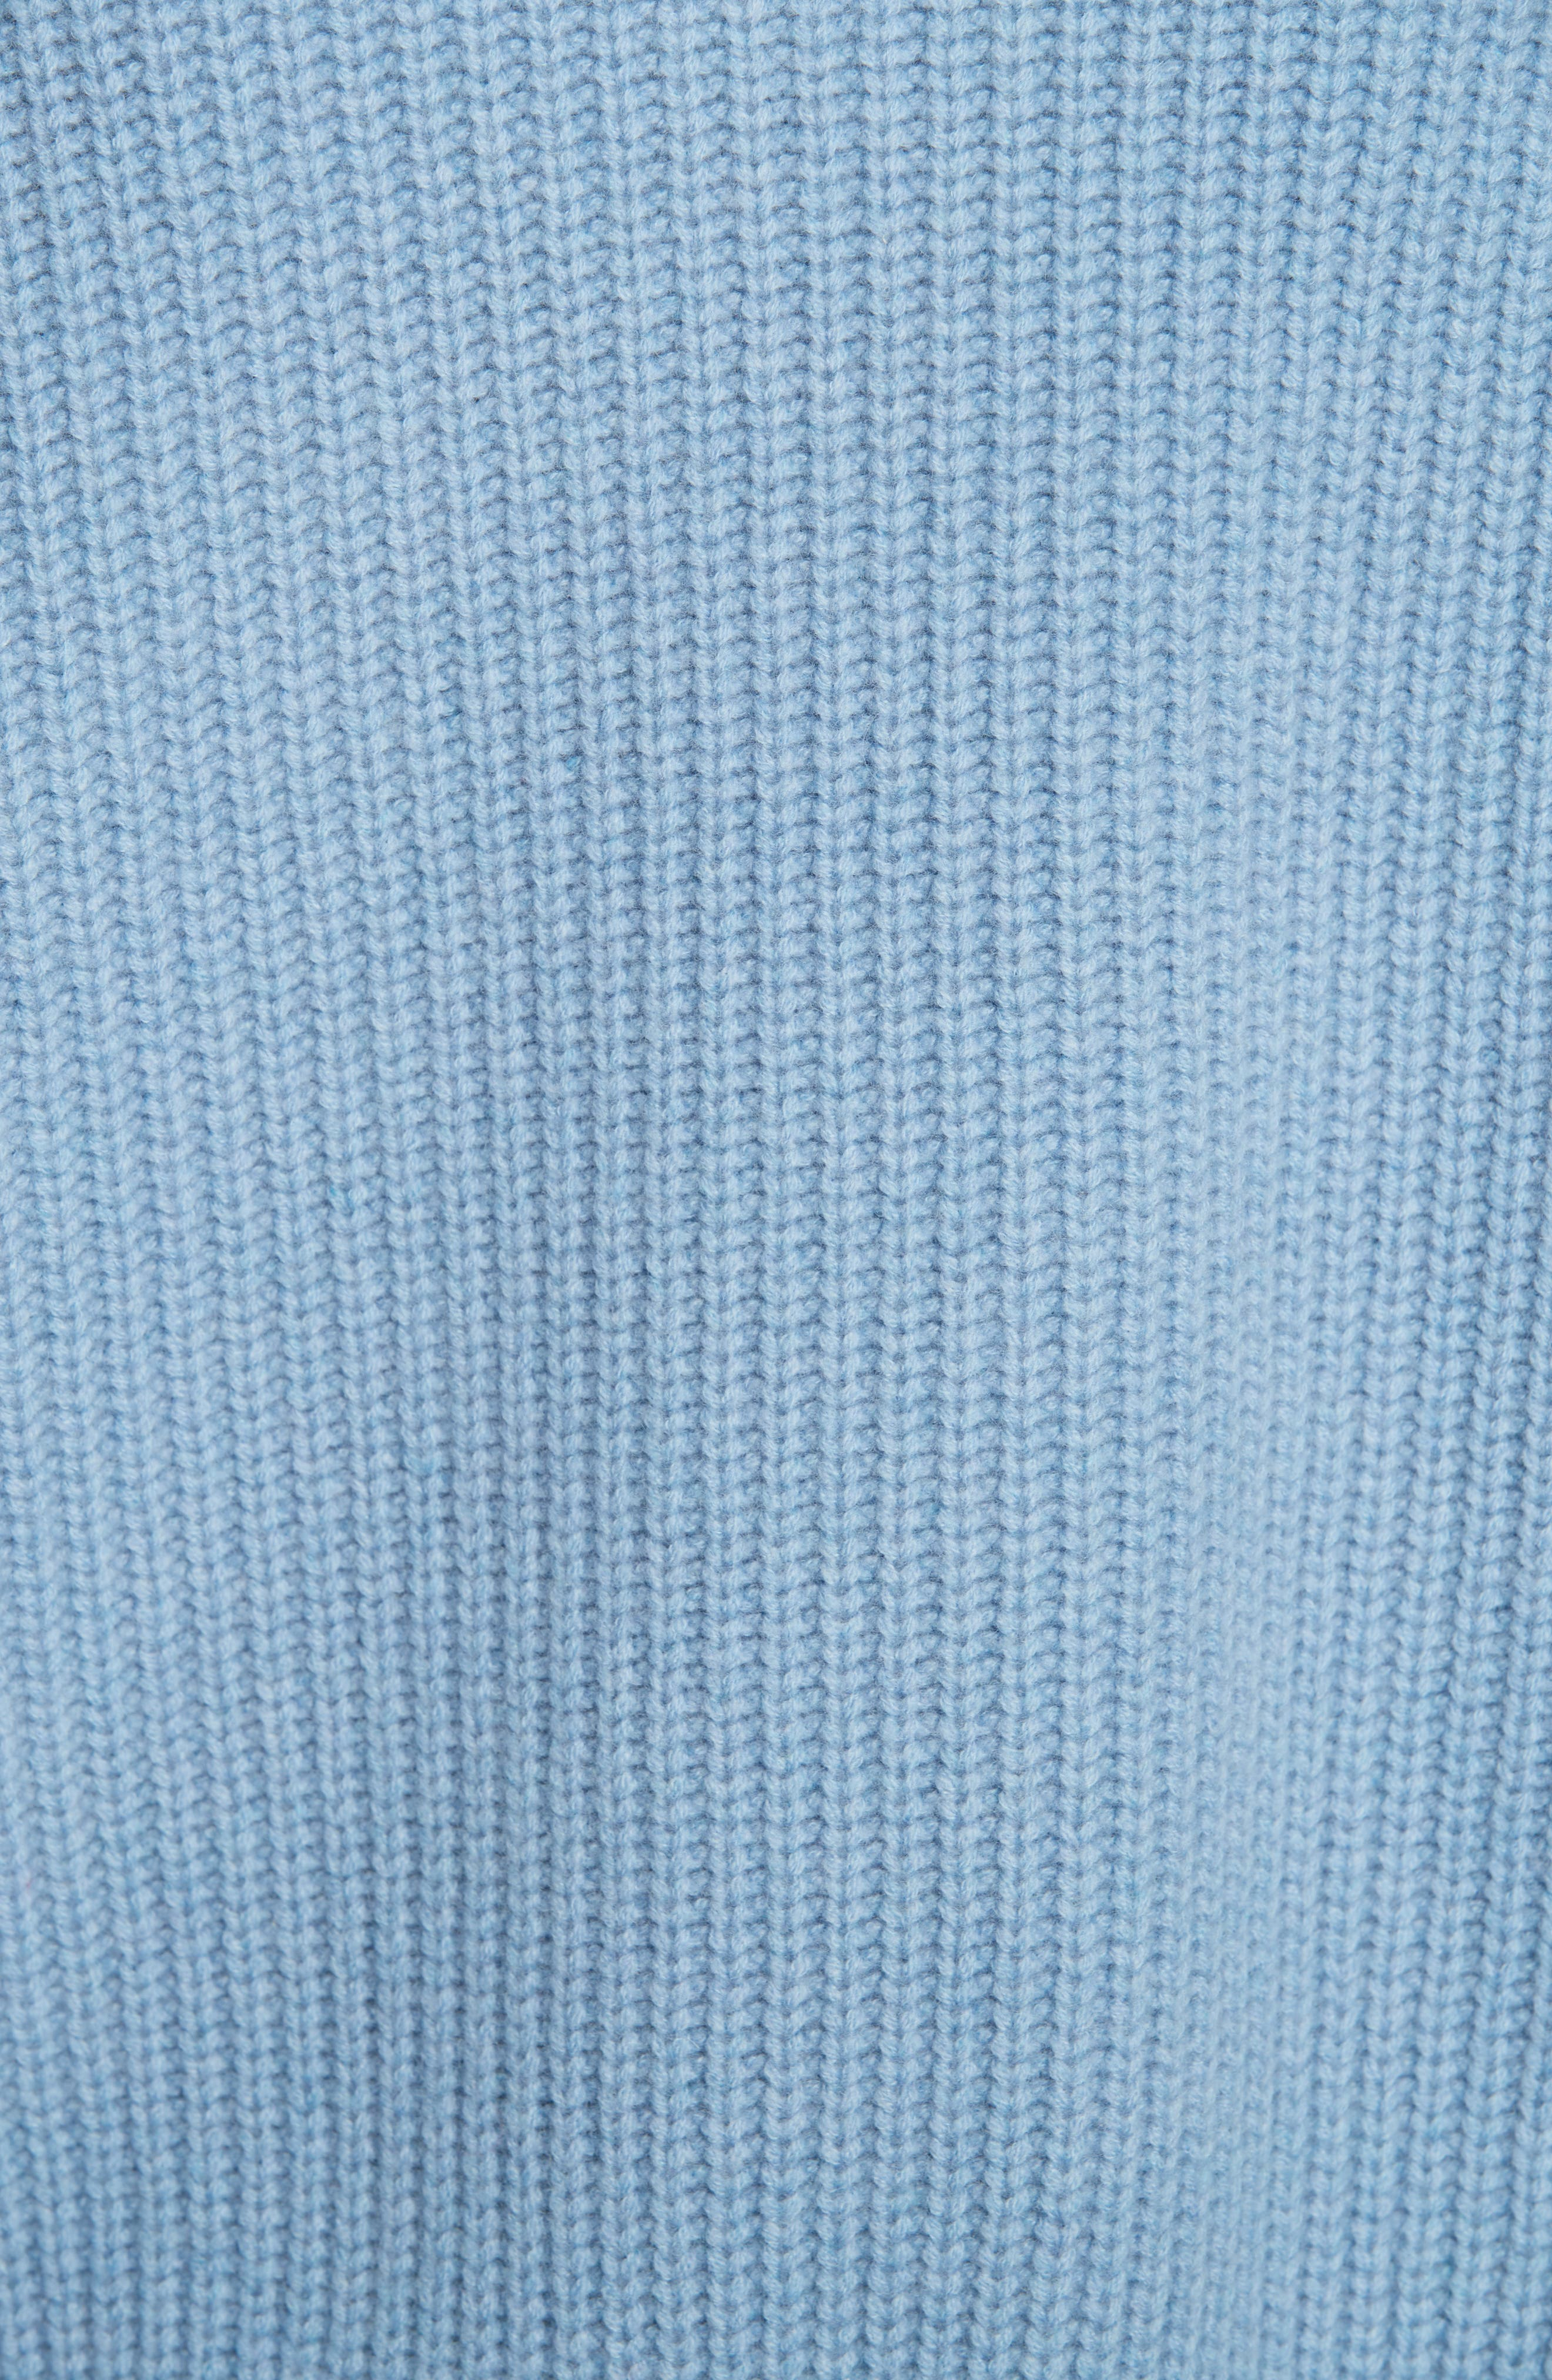 V-Neck Wool & Cashmere Sweater,                             Alternate thumbnail 5, color,                             BLUE COLONY